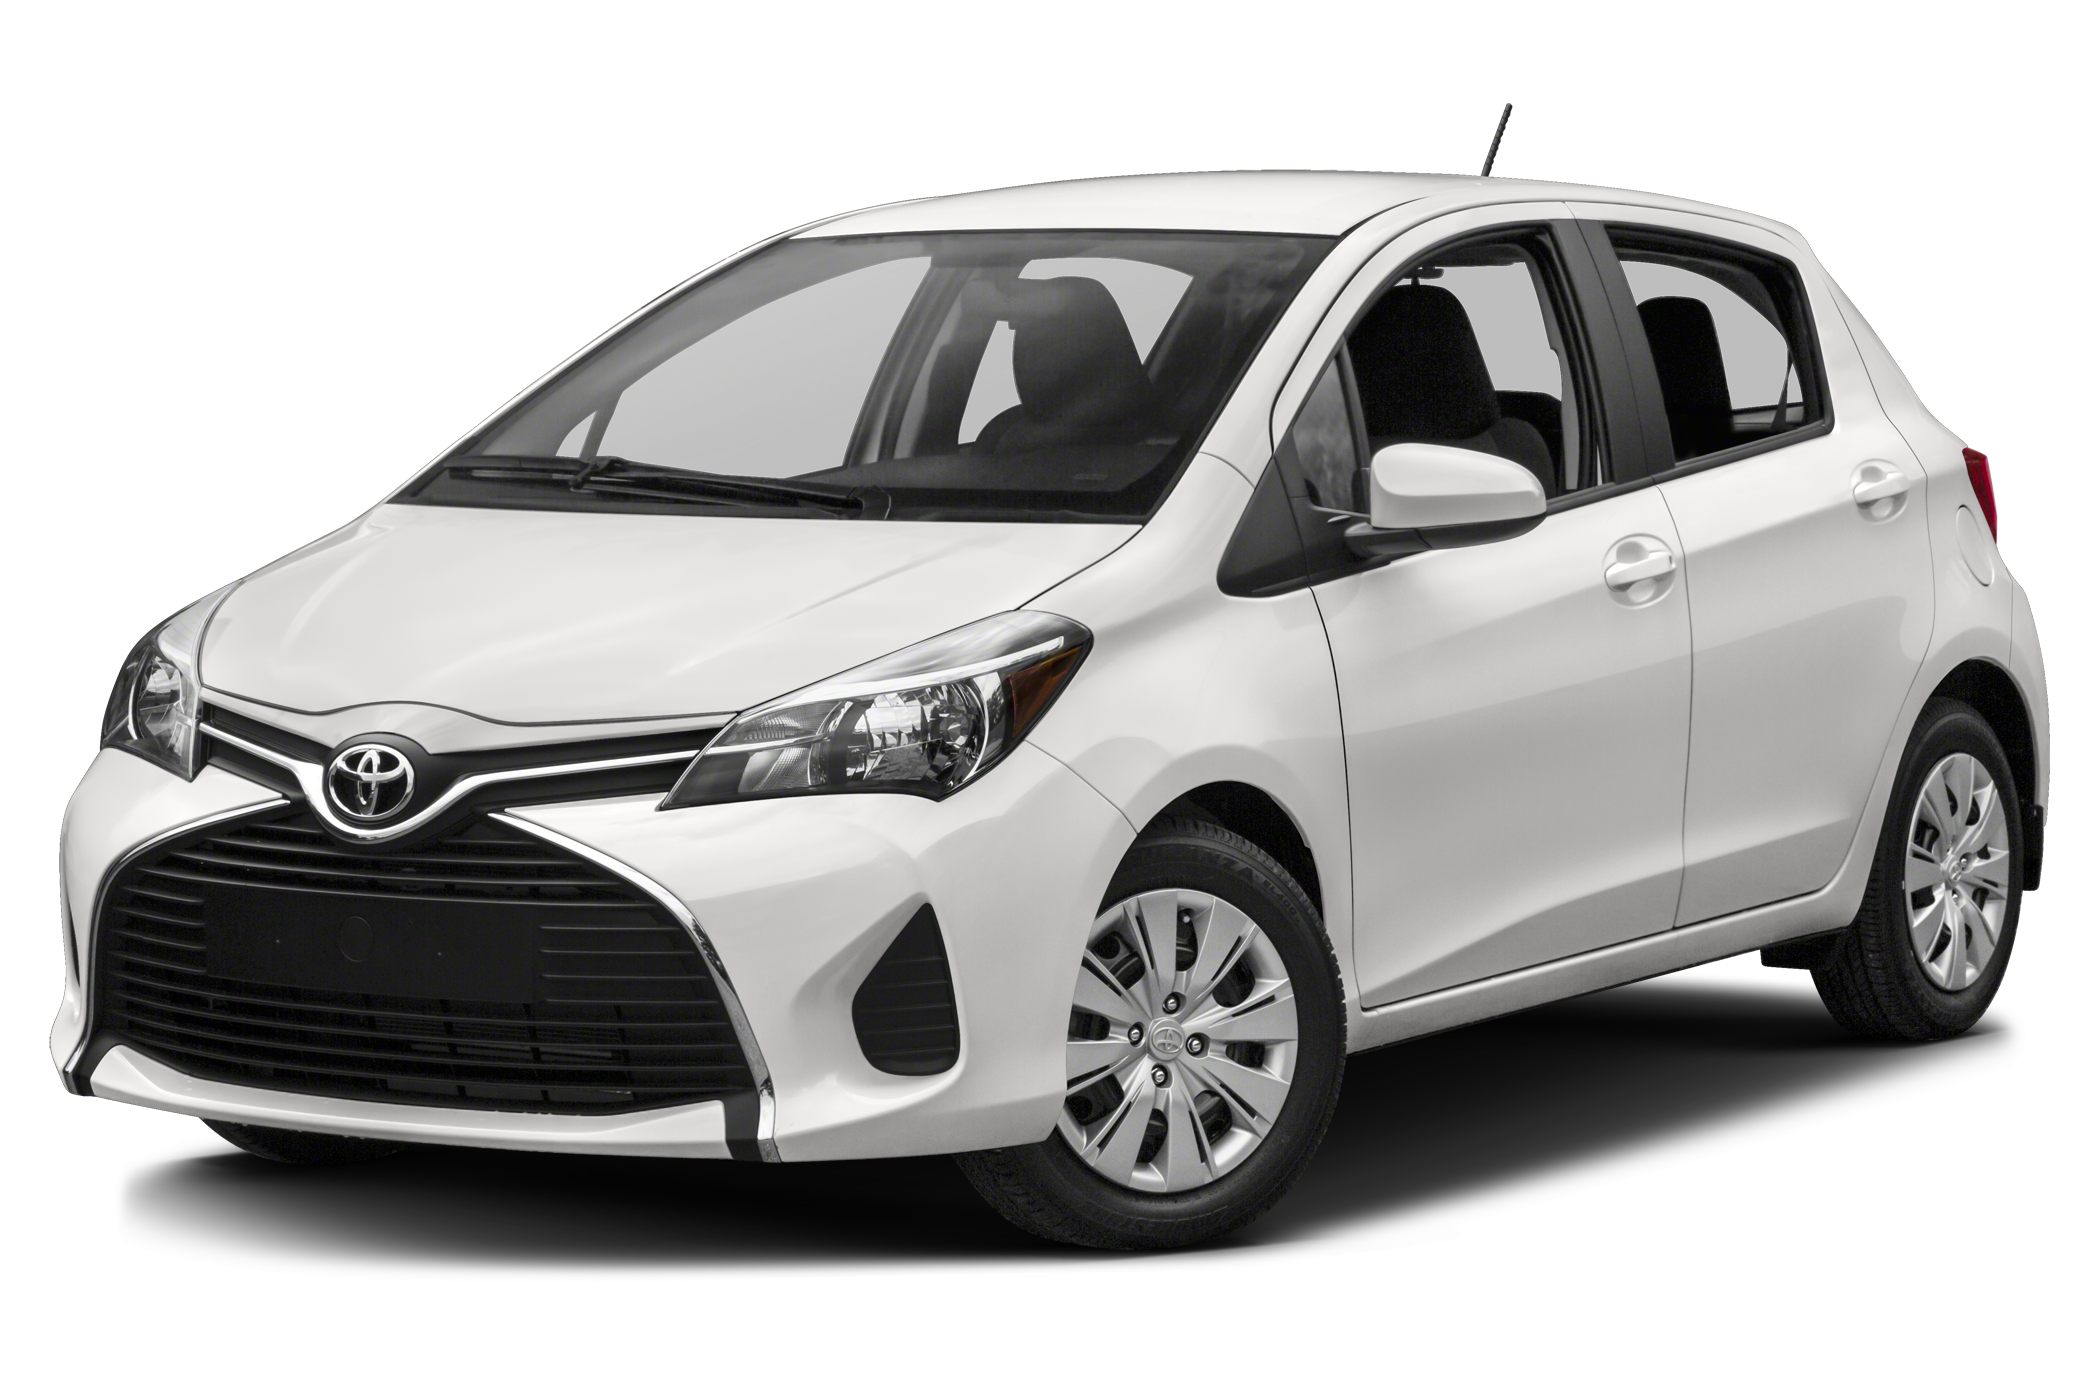 2017 Toyota Yaris LE Westboro Toyota is proud to present HASSLE FREE BUYING EXPERIENCE with upfron